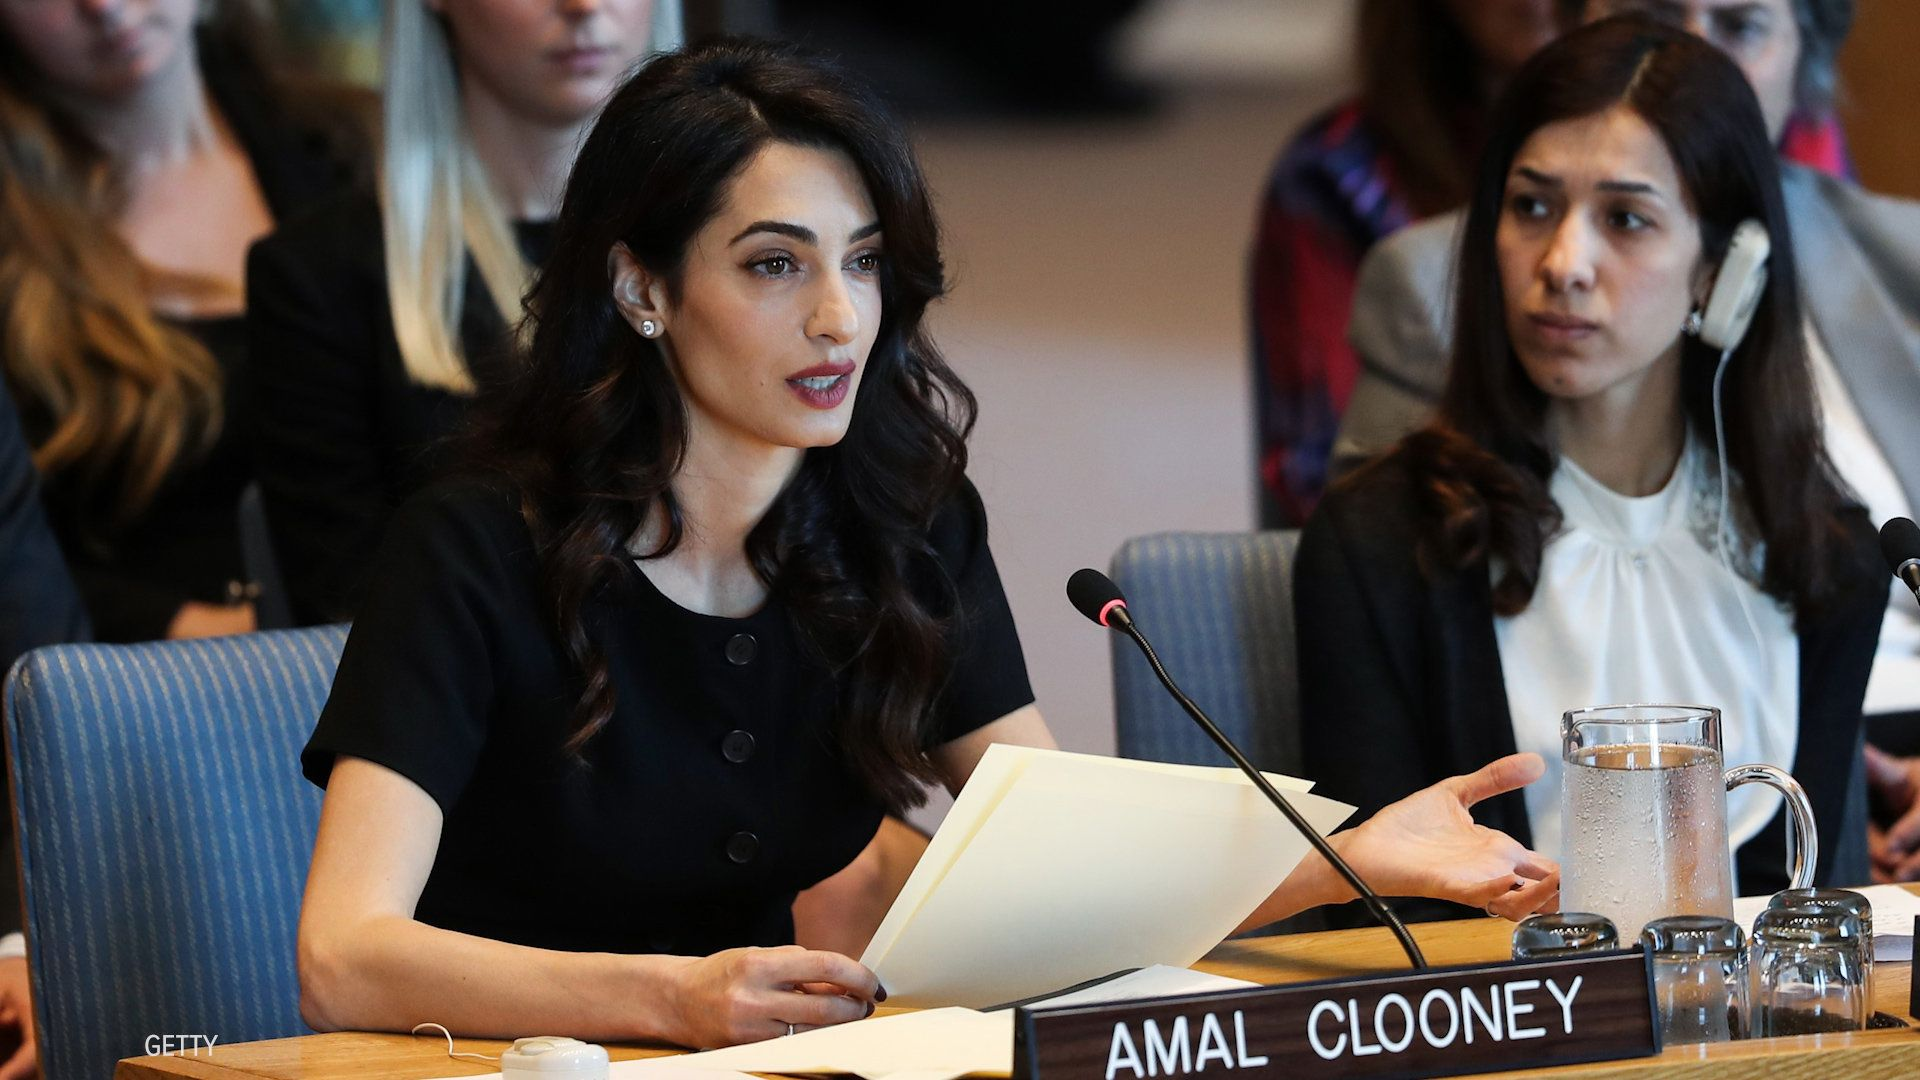 Human Rights Lawyer Amal Clooney Fights ...